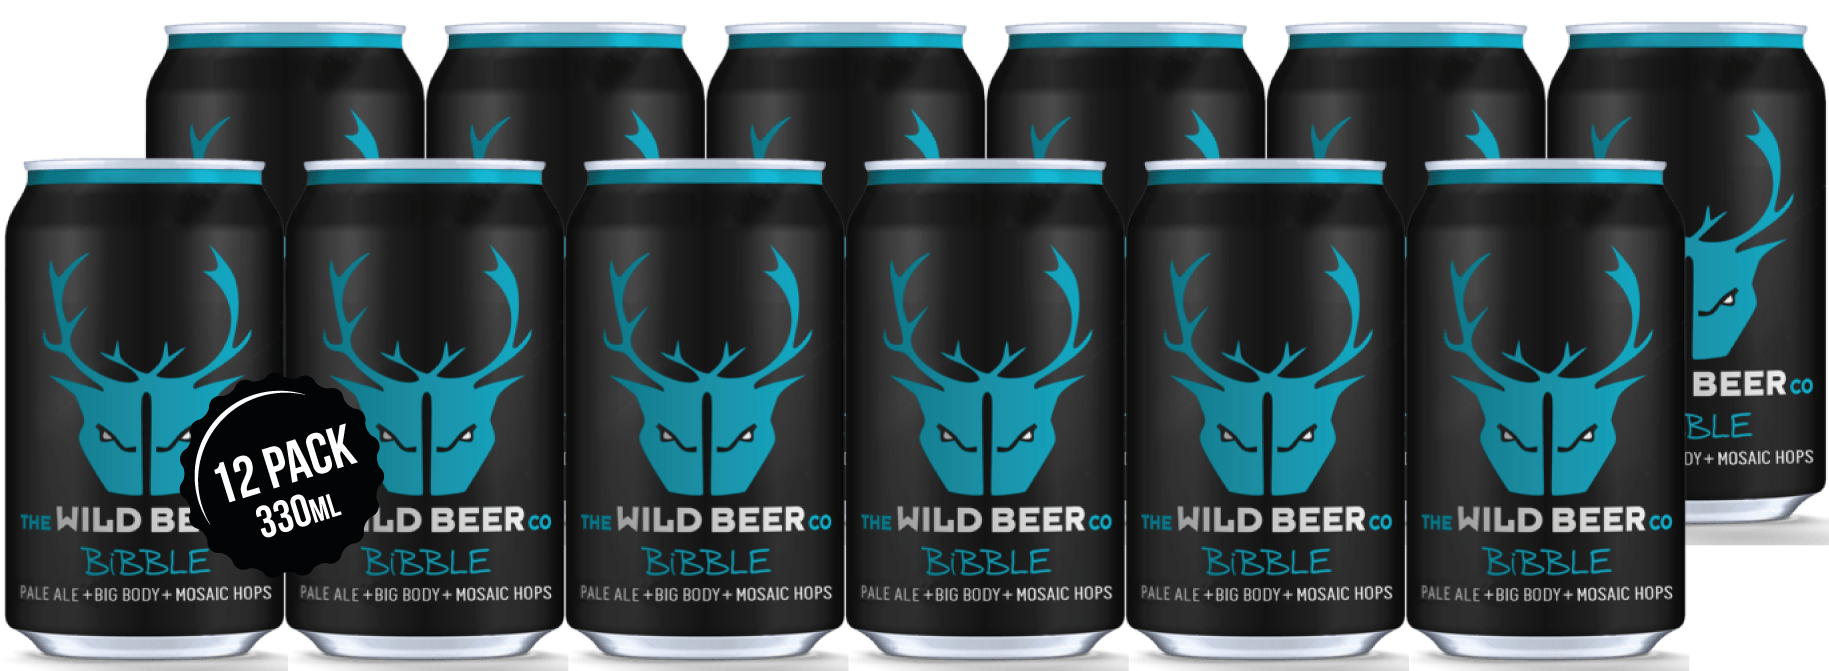 Wild Beer Bibble